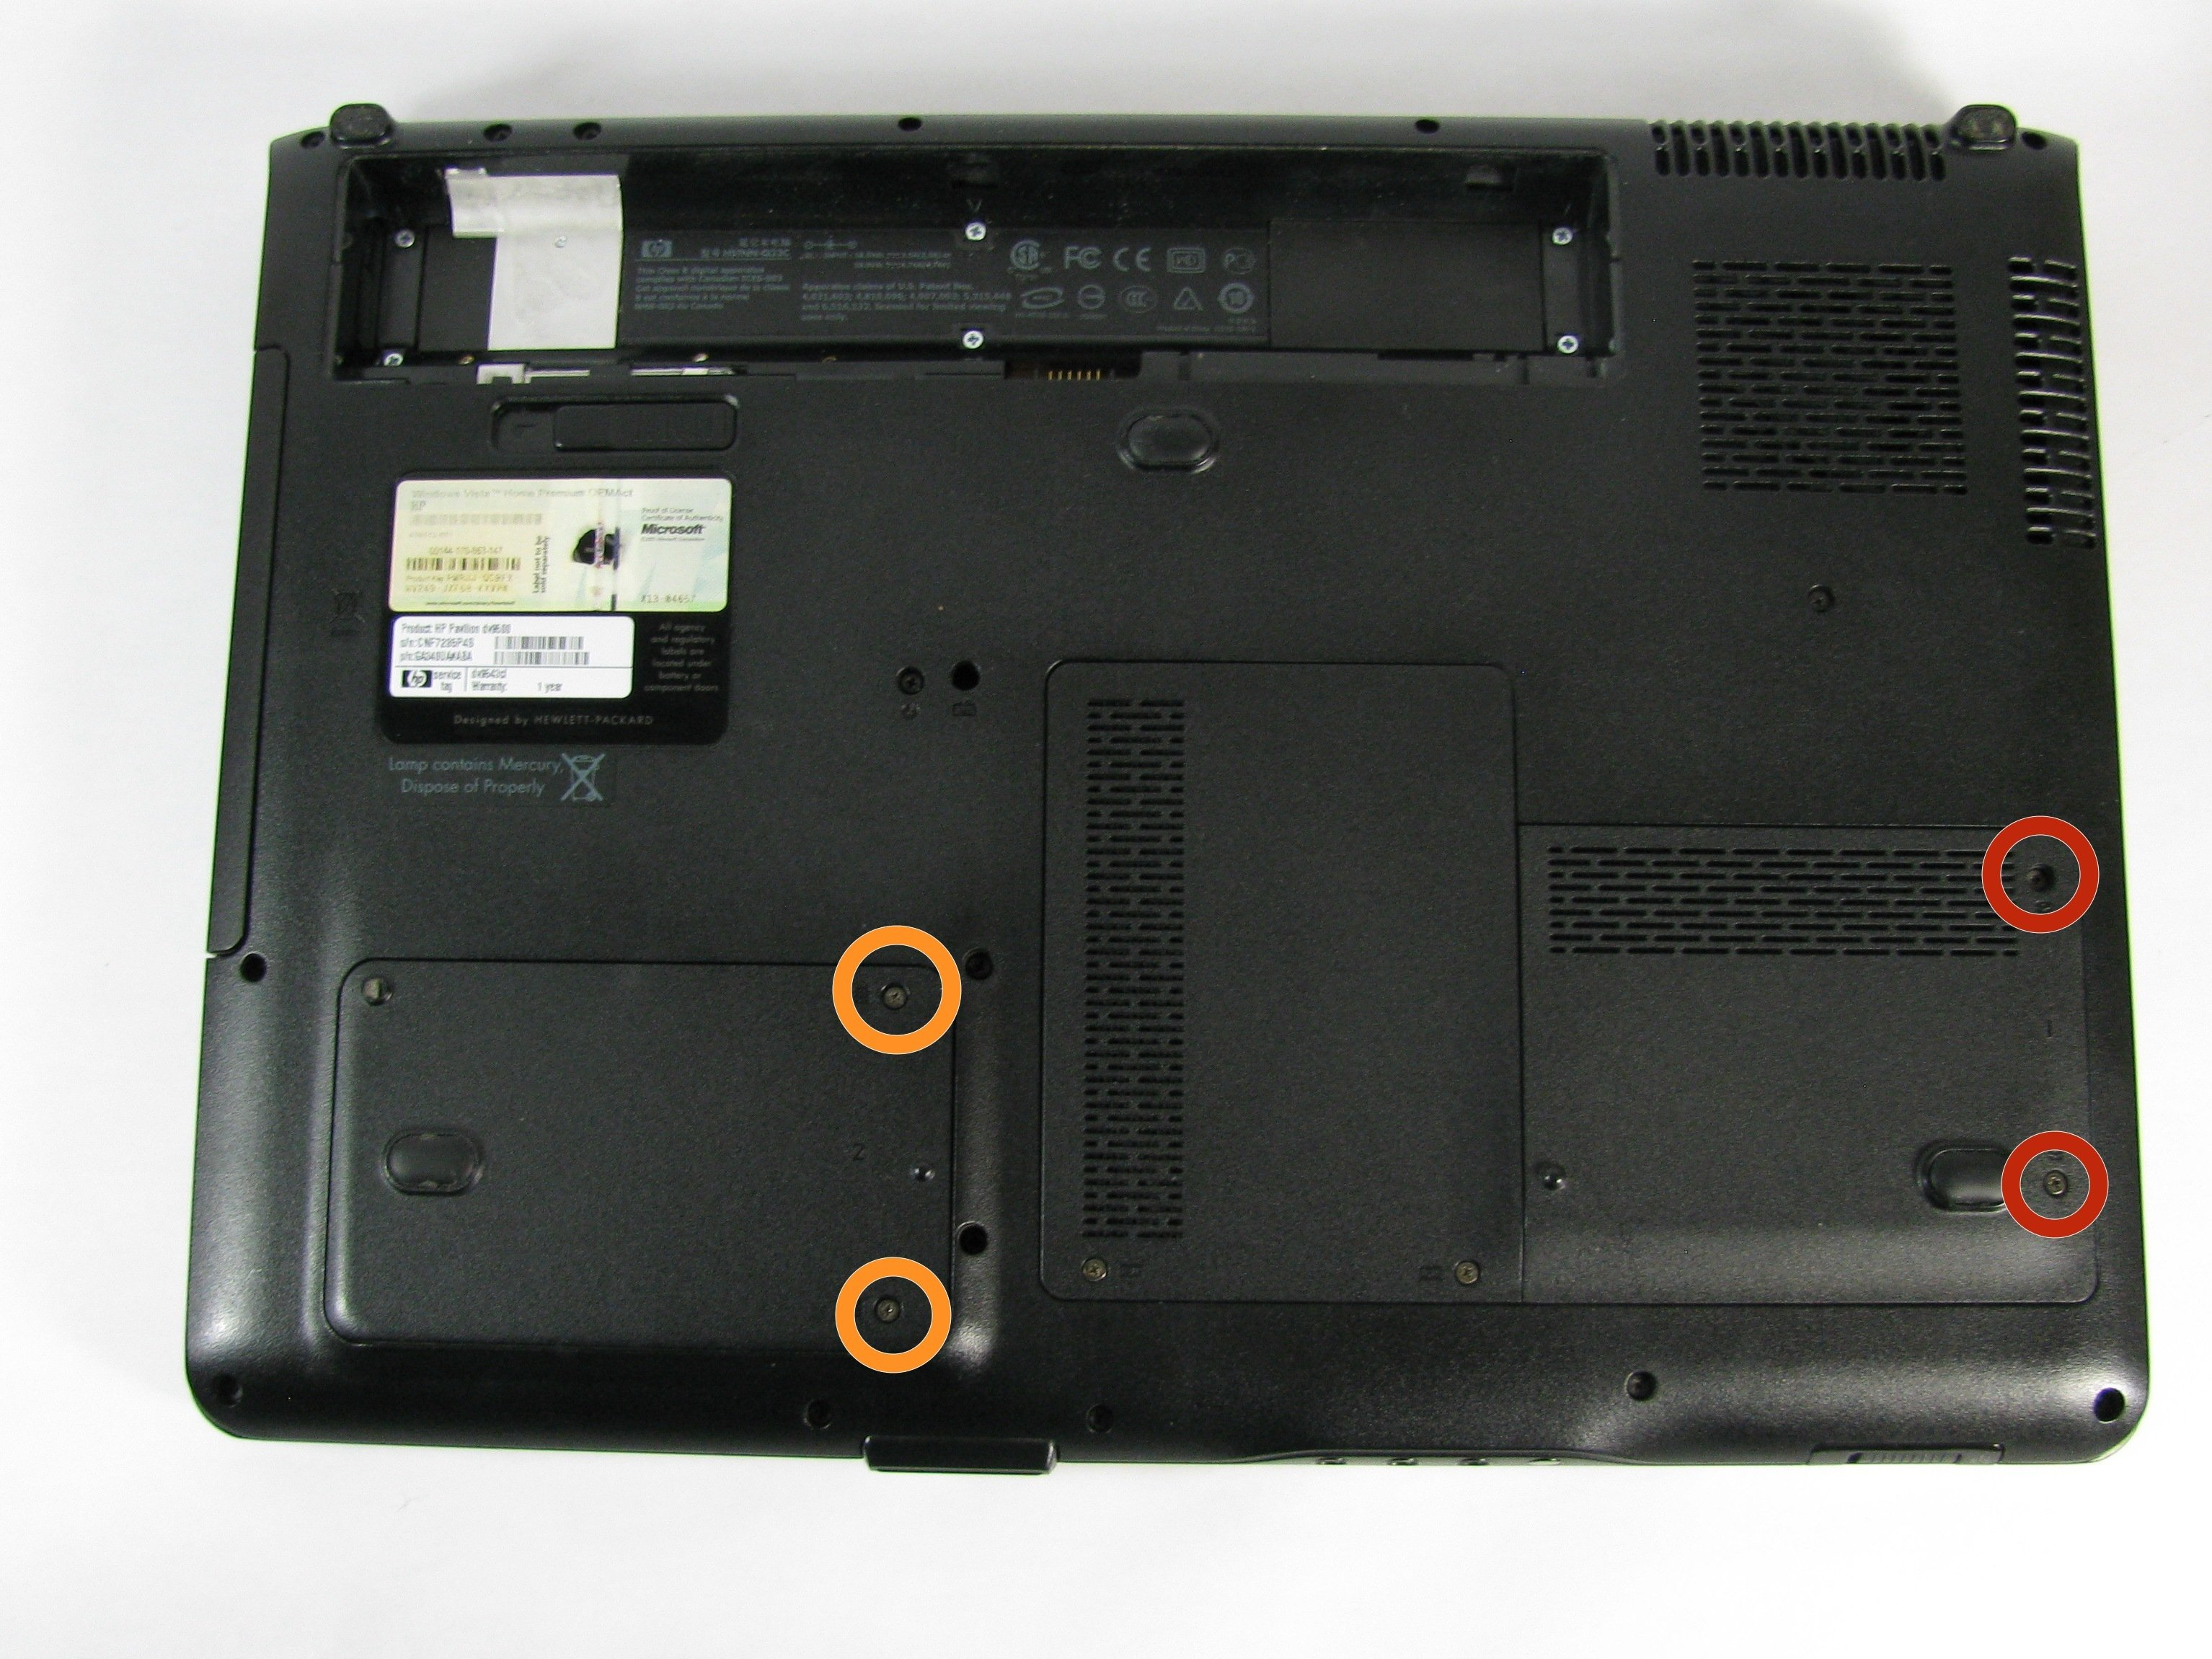 HP Pavilion dv9000 Hard Drive Replacement - iFixit Repair Guide